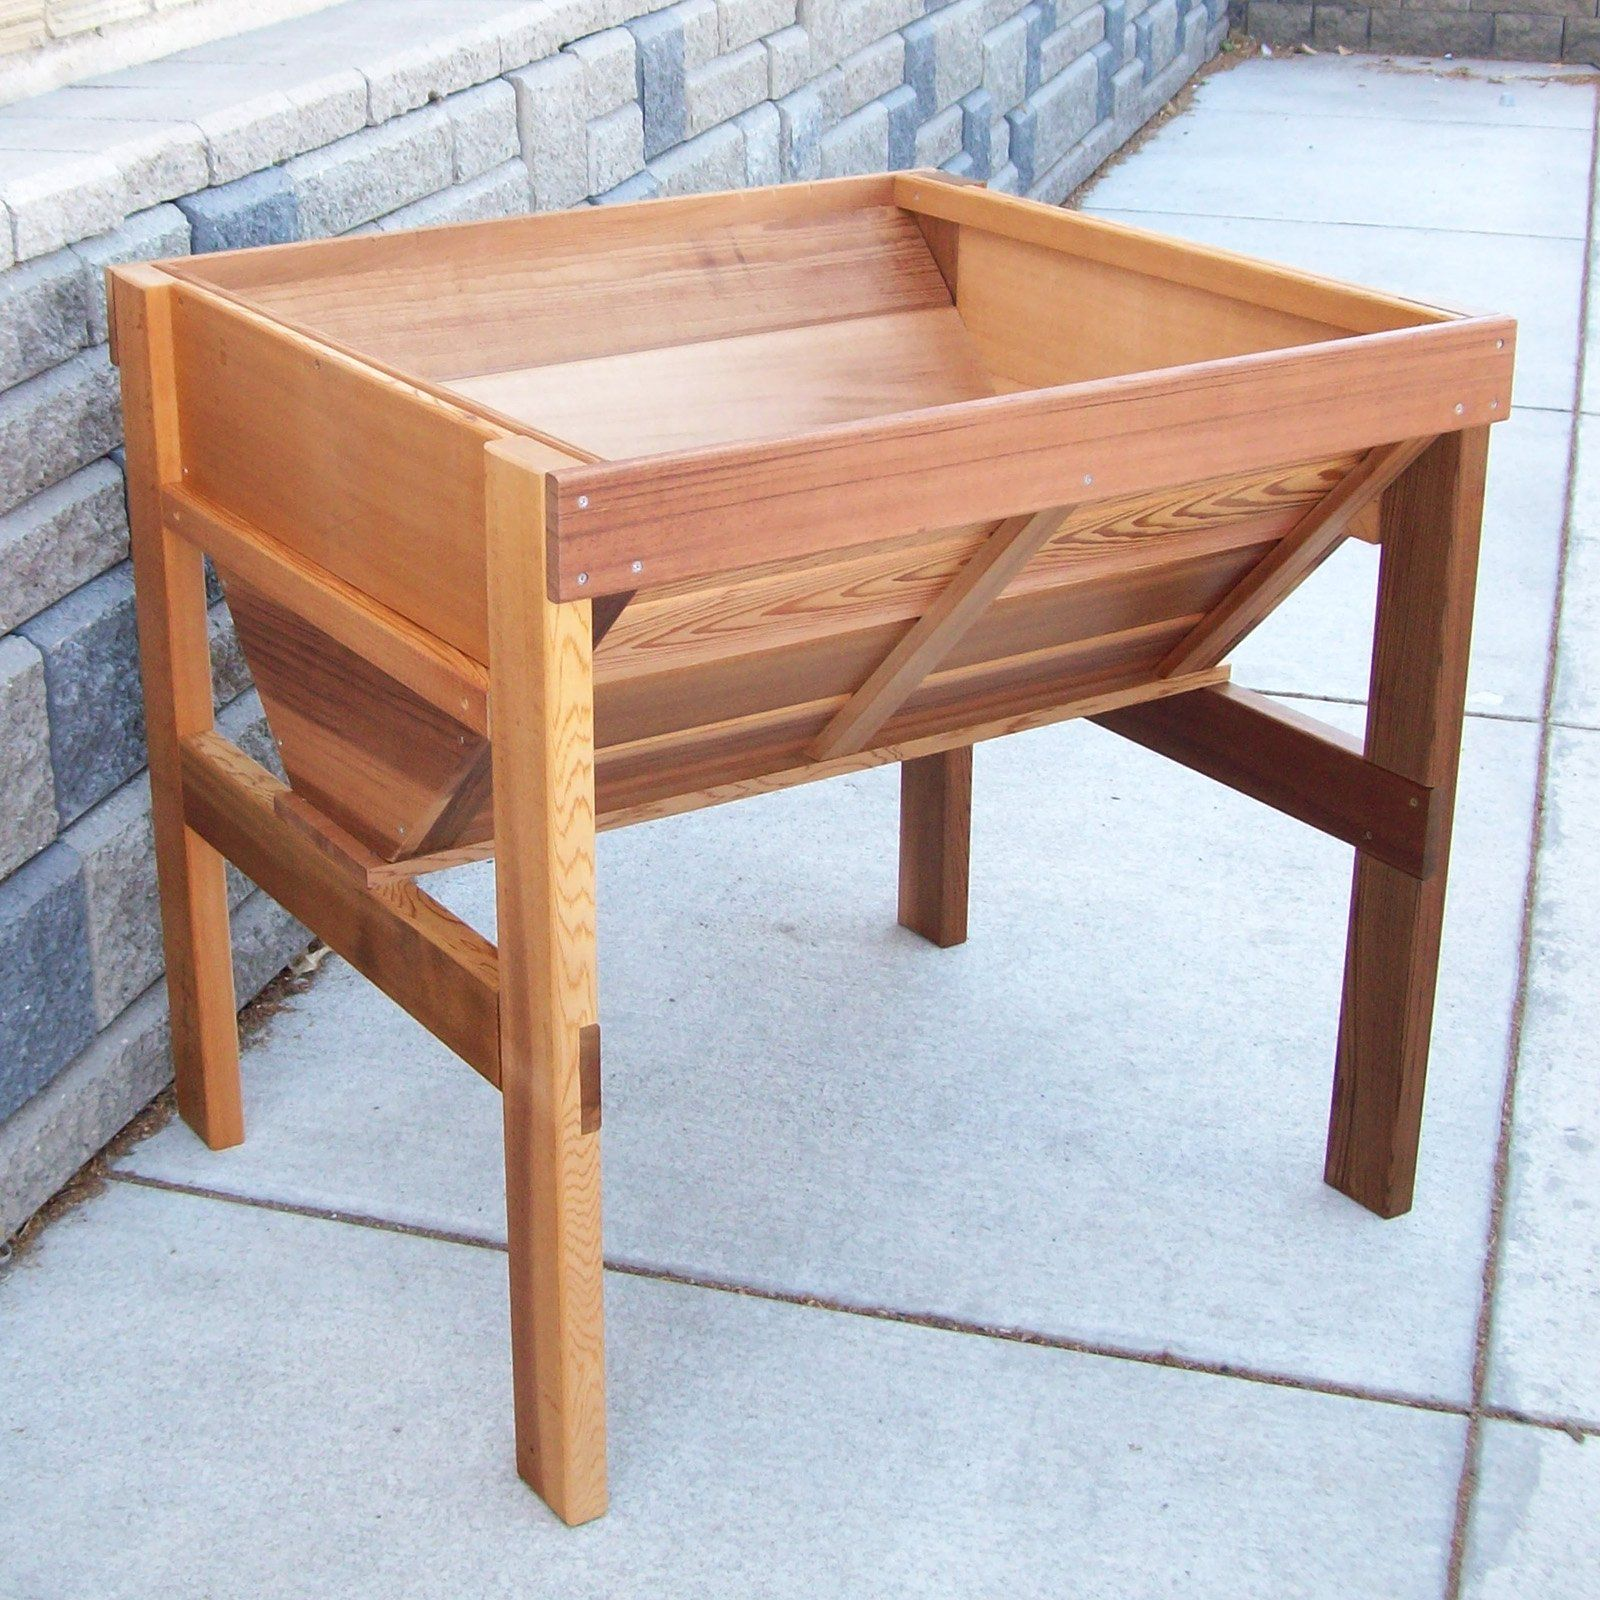 Wood Country Cedar Wood Vegetable Raised Planter Box   $169.99 @